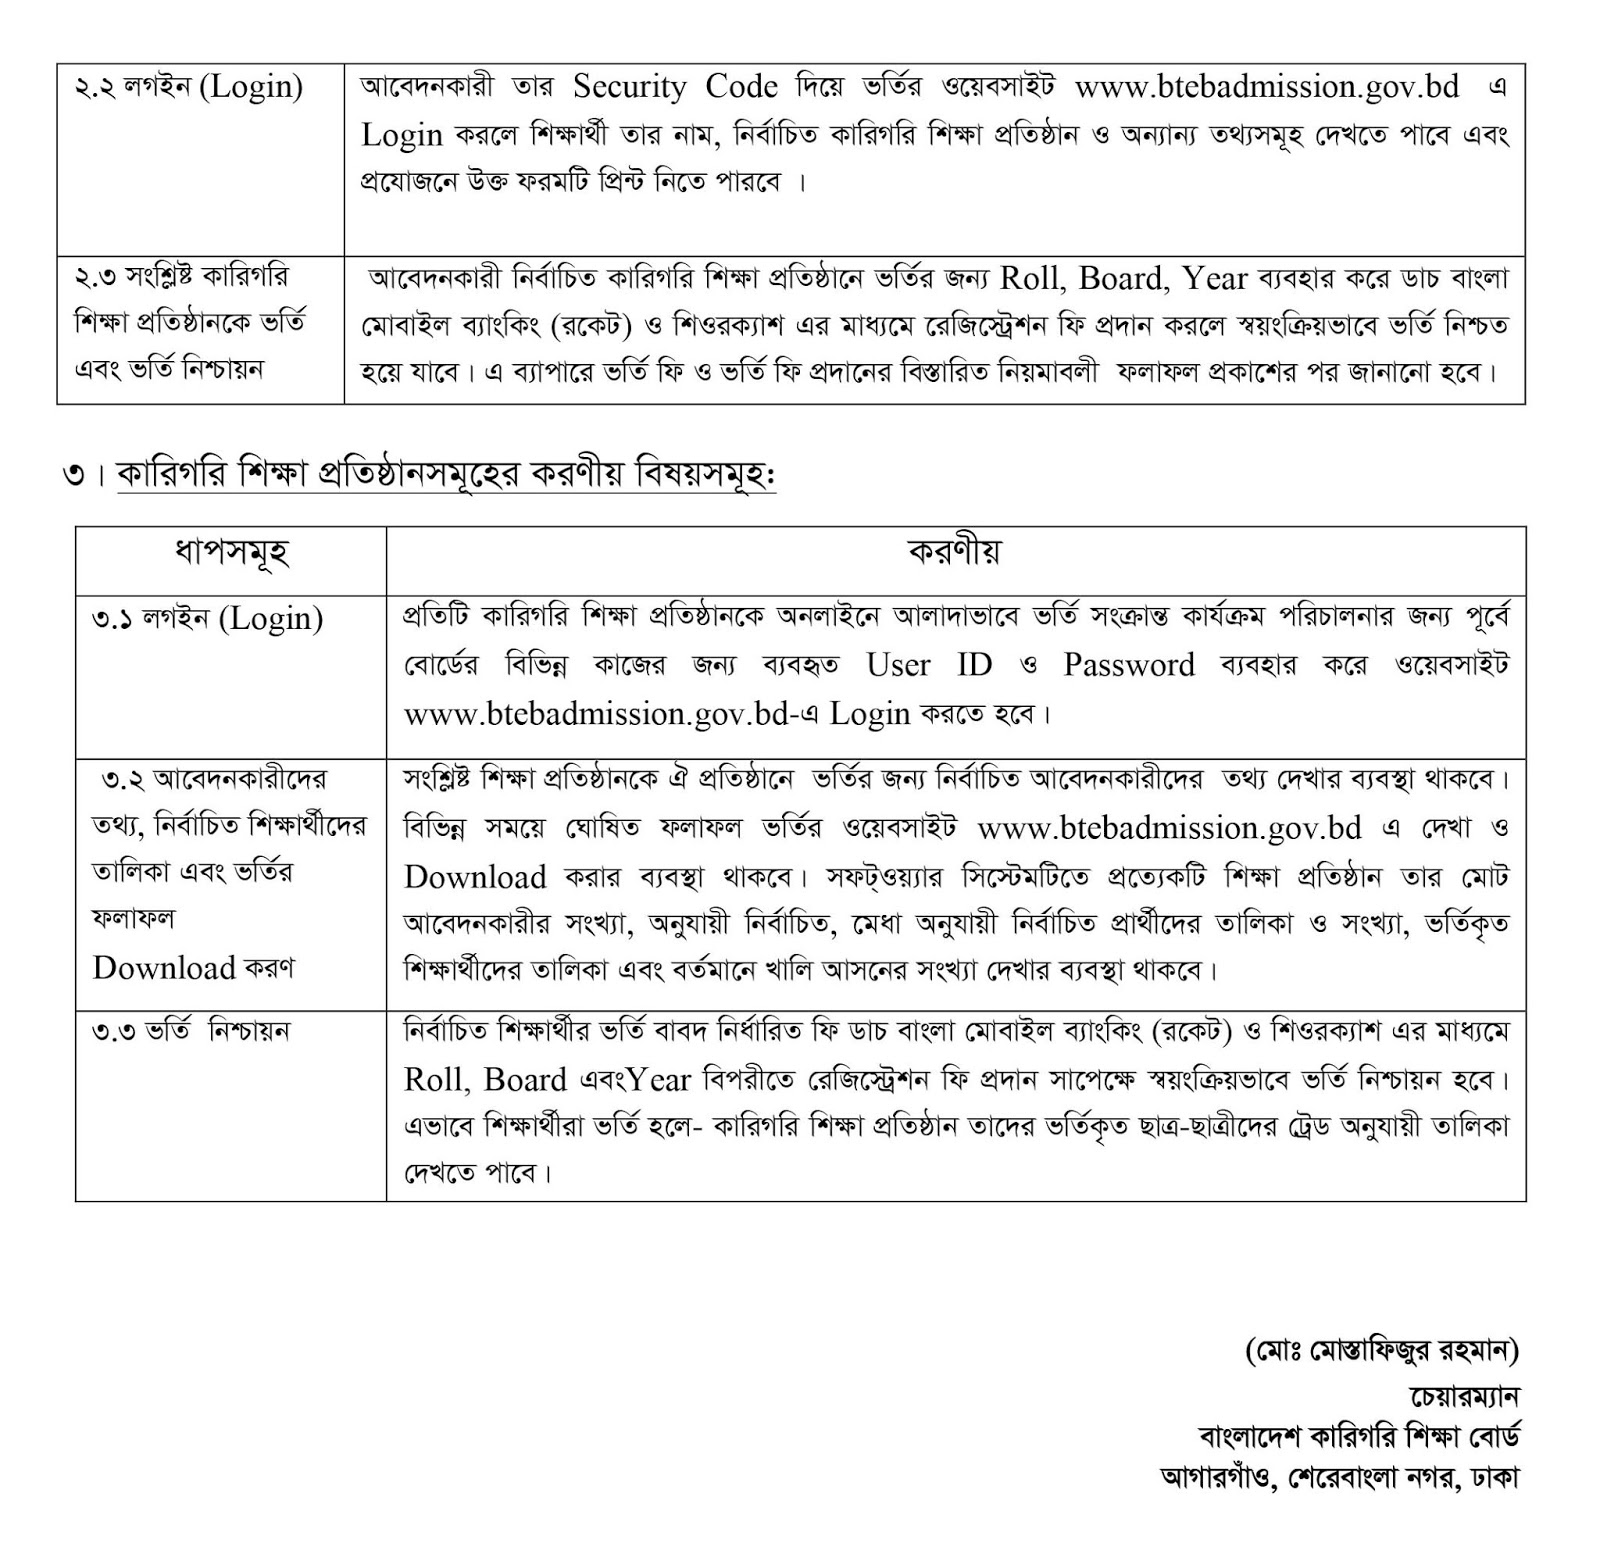 BTEB HSC (VOC) and HSC Business Management Admission Circular 2018-19